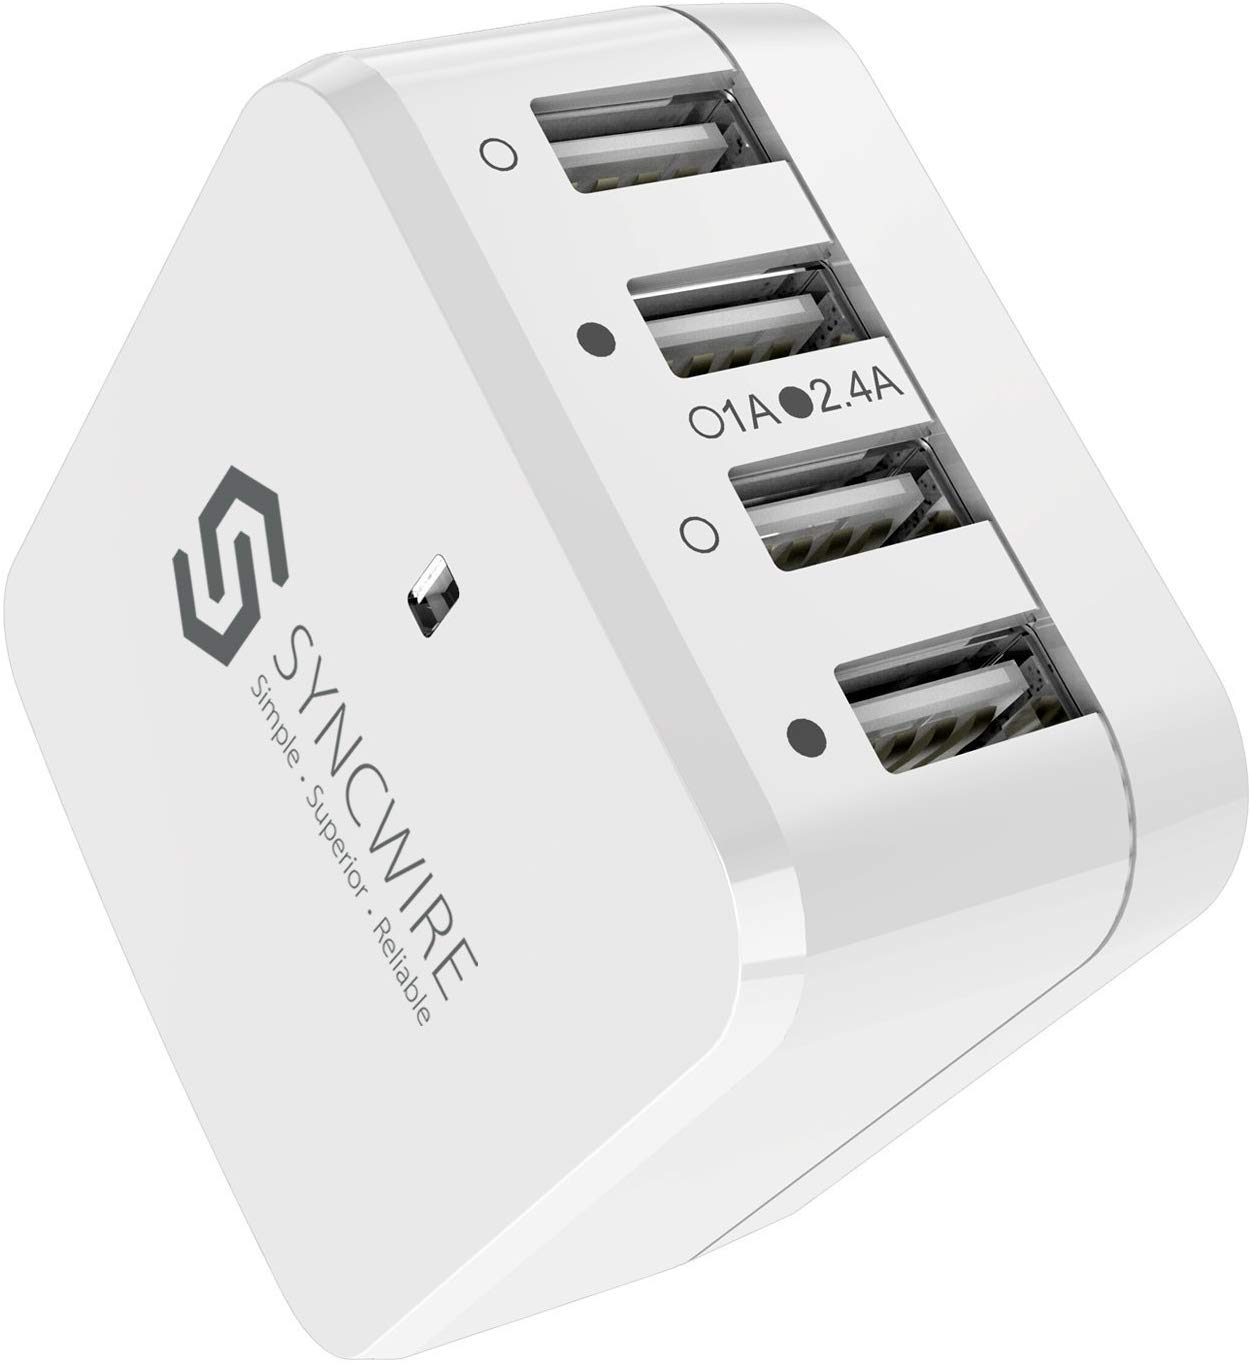 Syncwire USB Wall Charger Travel Plug